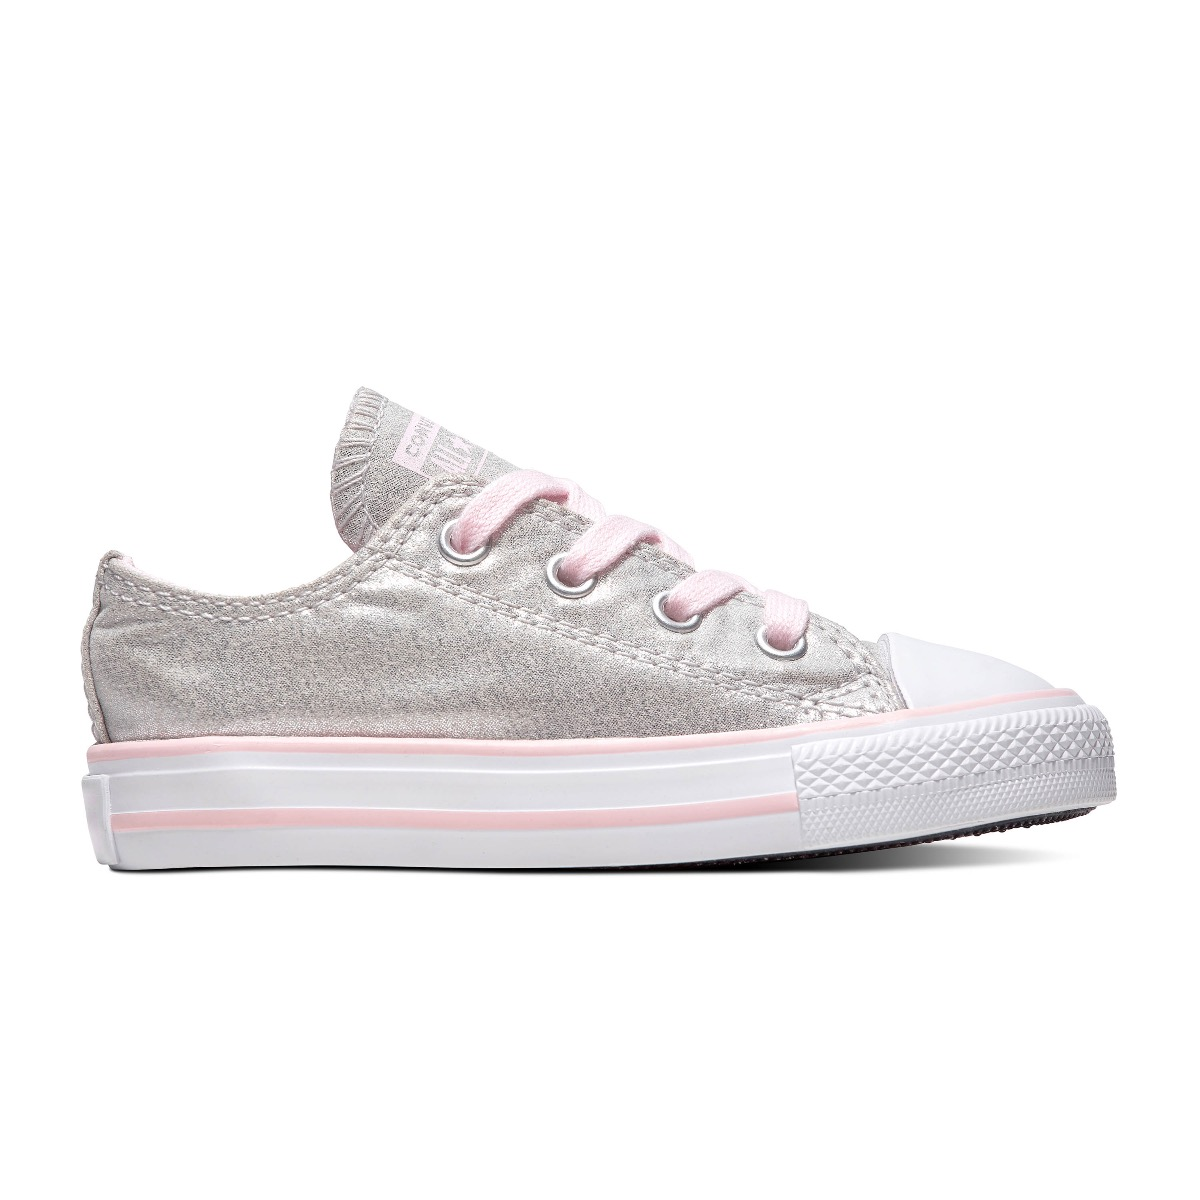 90f1434b872 Alle Bedrijven Online: Converse all Star (Pagina 6)